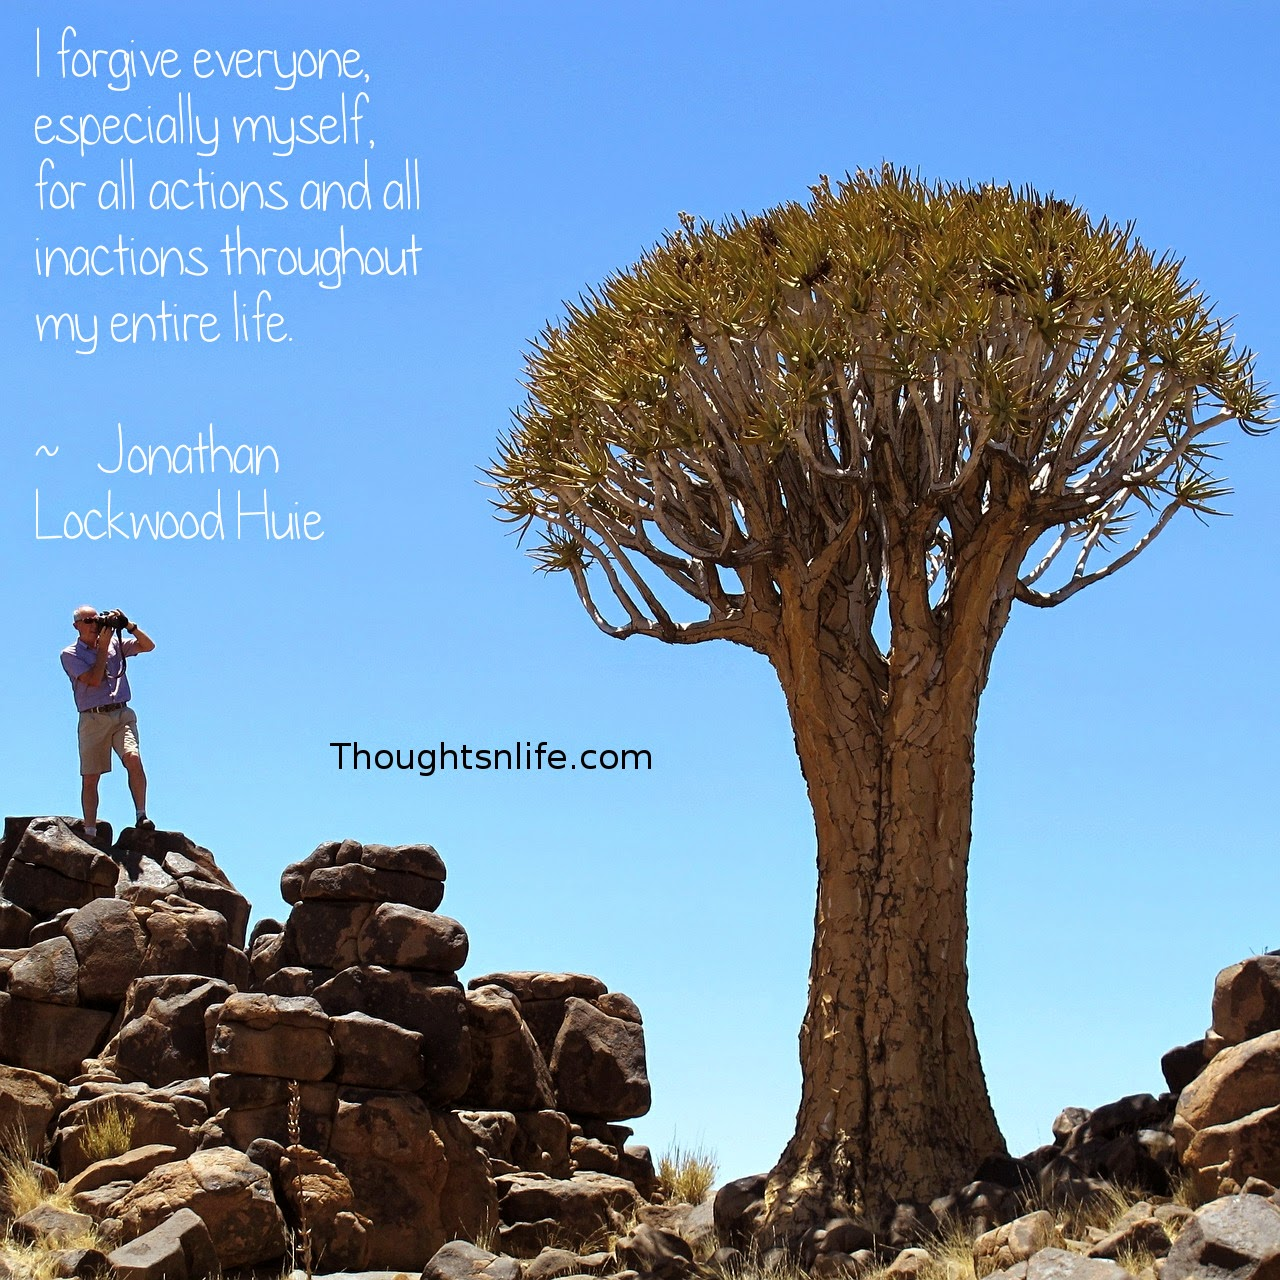 Thoughtsnlife.com: I forgive everyone, especially myself, for all actions and all inactions throughout my entire life.  ~   Jonathan Lockwood Huie